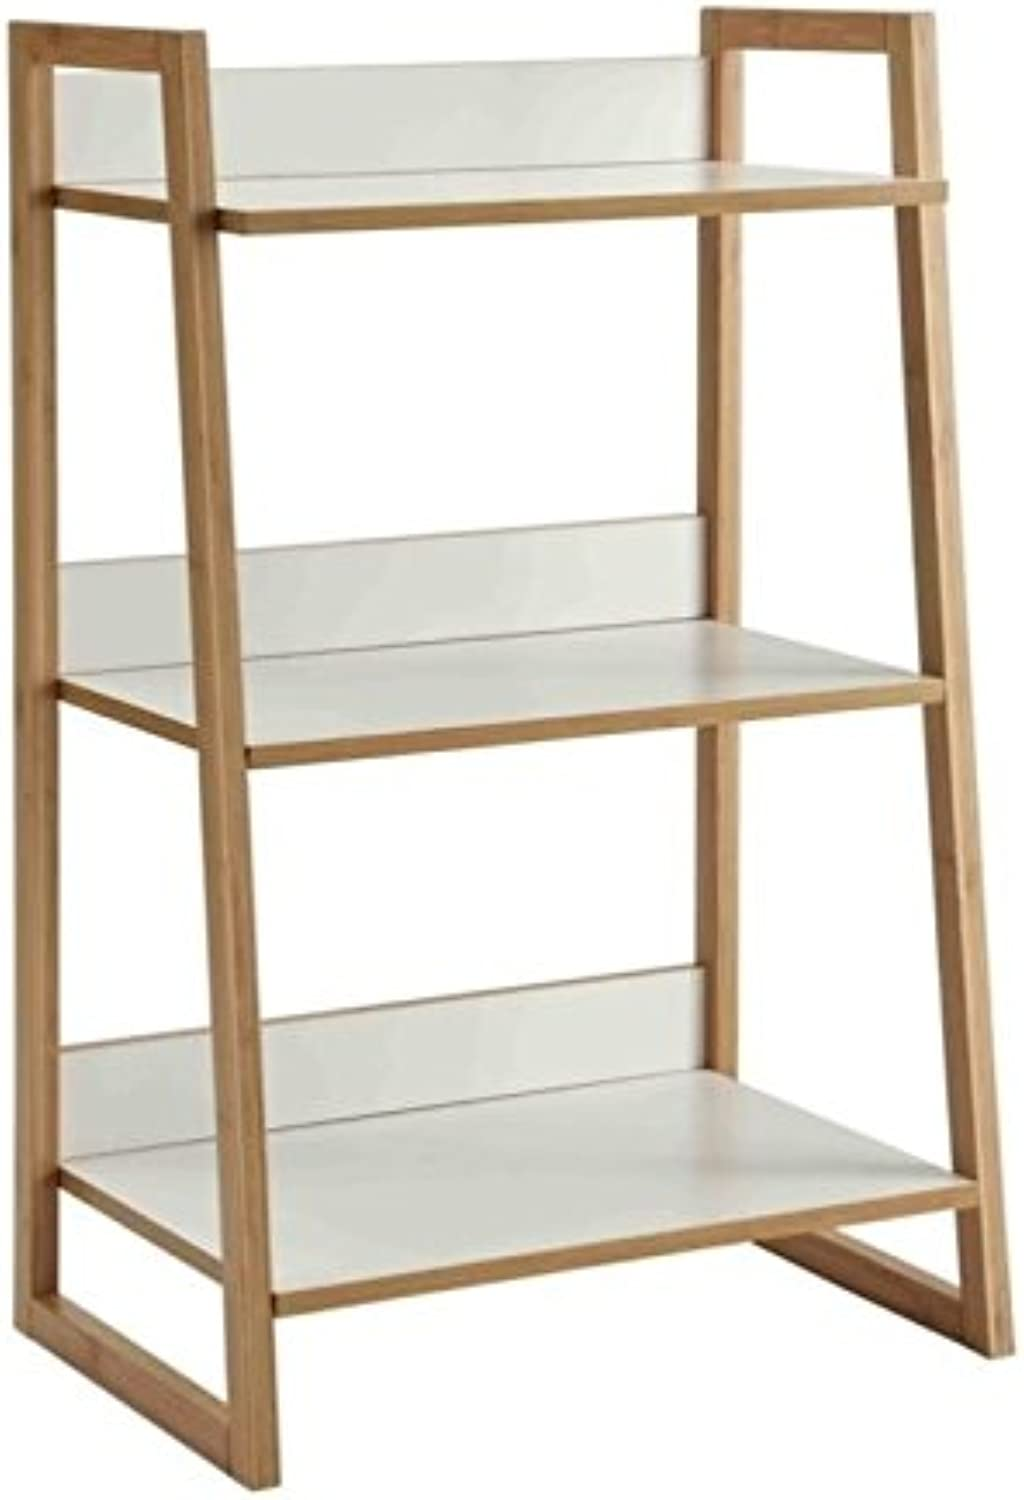 Pemberly Row 3 Tier Shelf in White and Bamboo